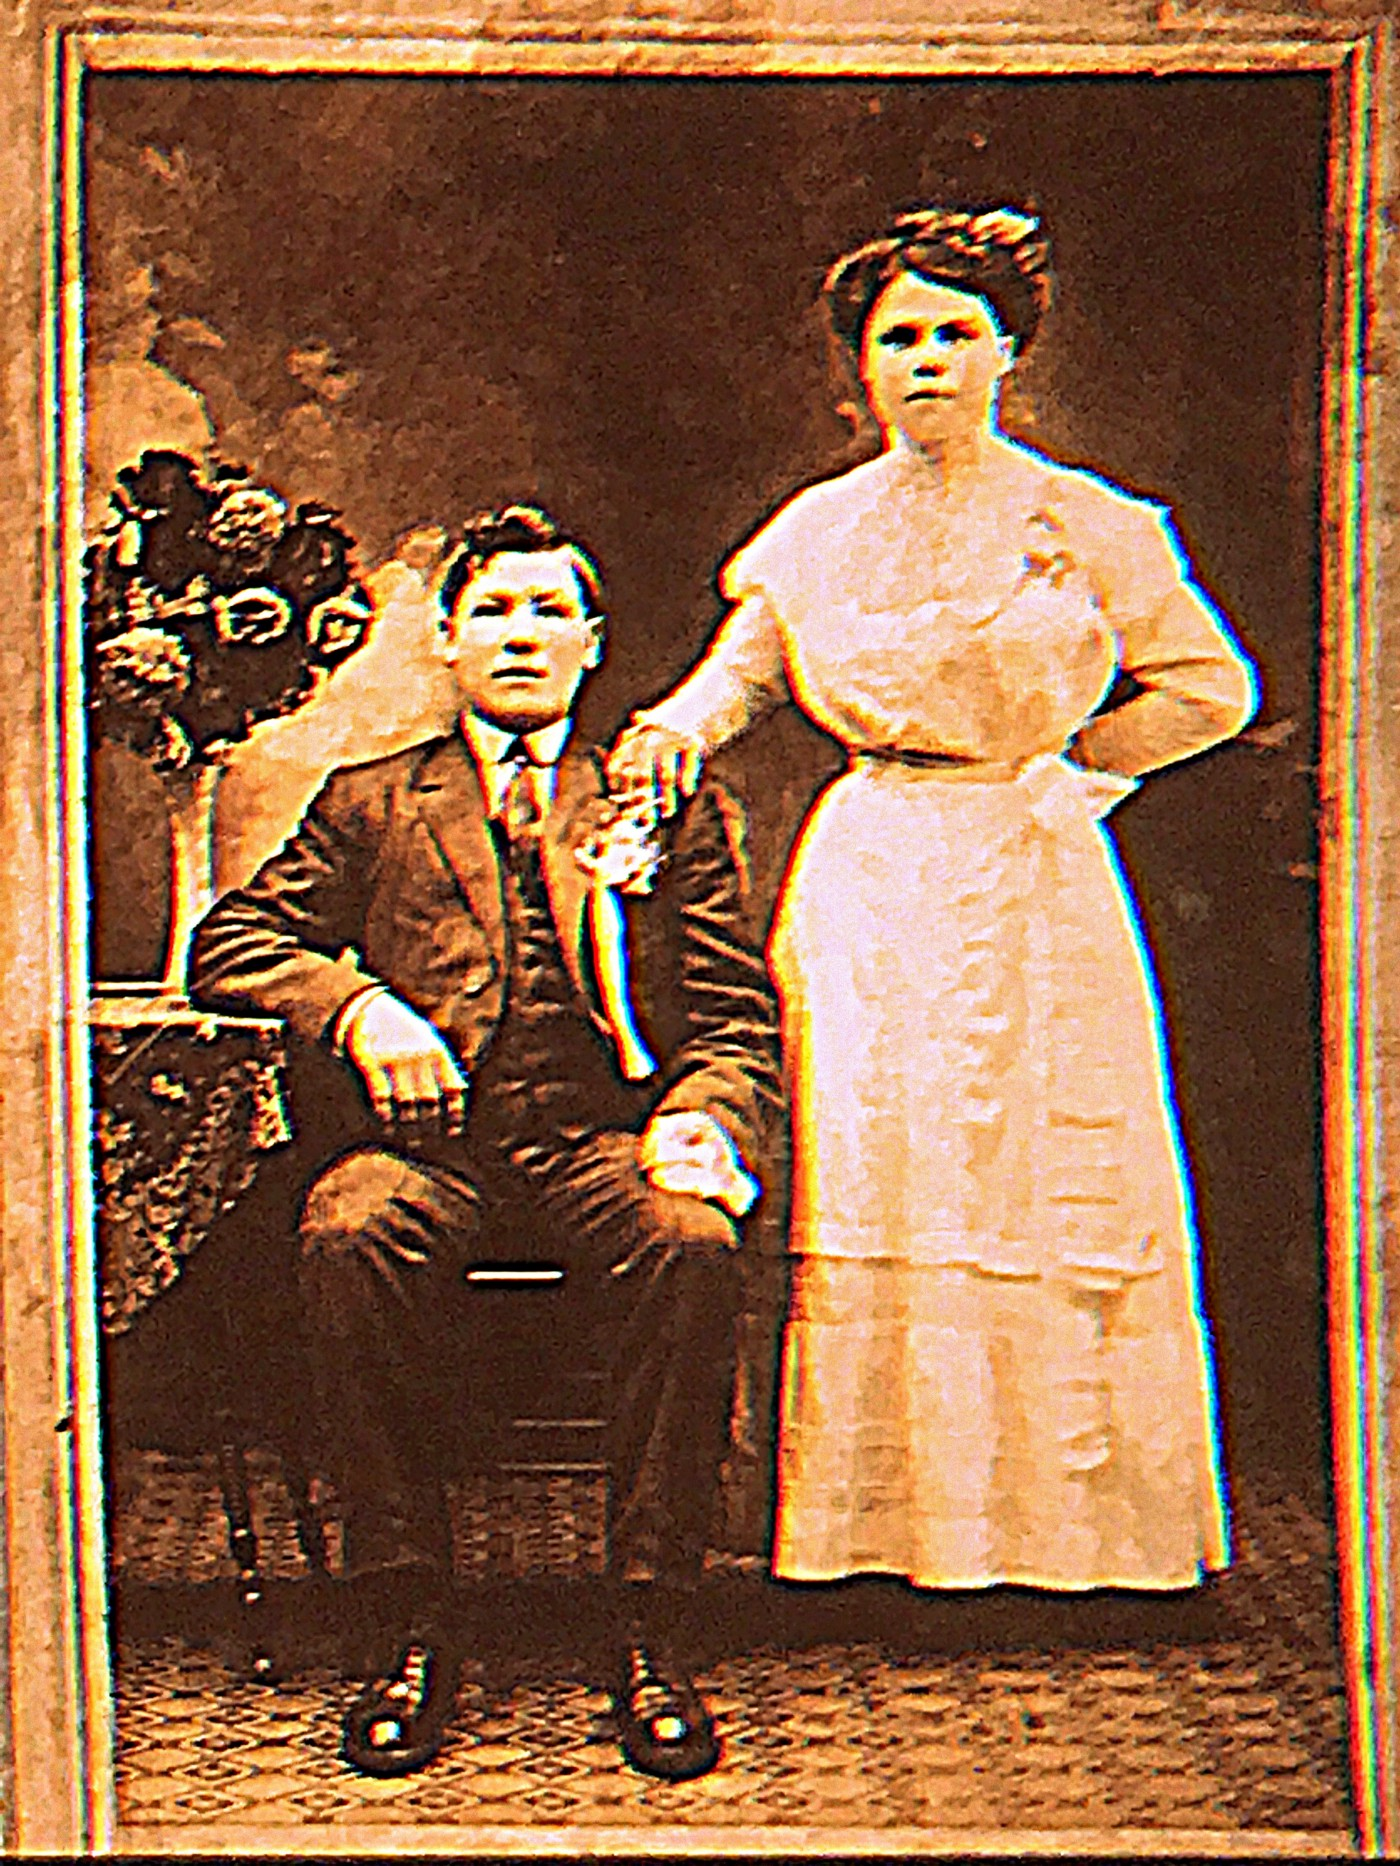 Antique photograph of a couple husband is seated and lady is standing wearing a very tight corset both very rigid looking posing for the camera